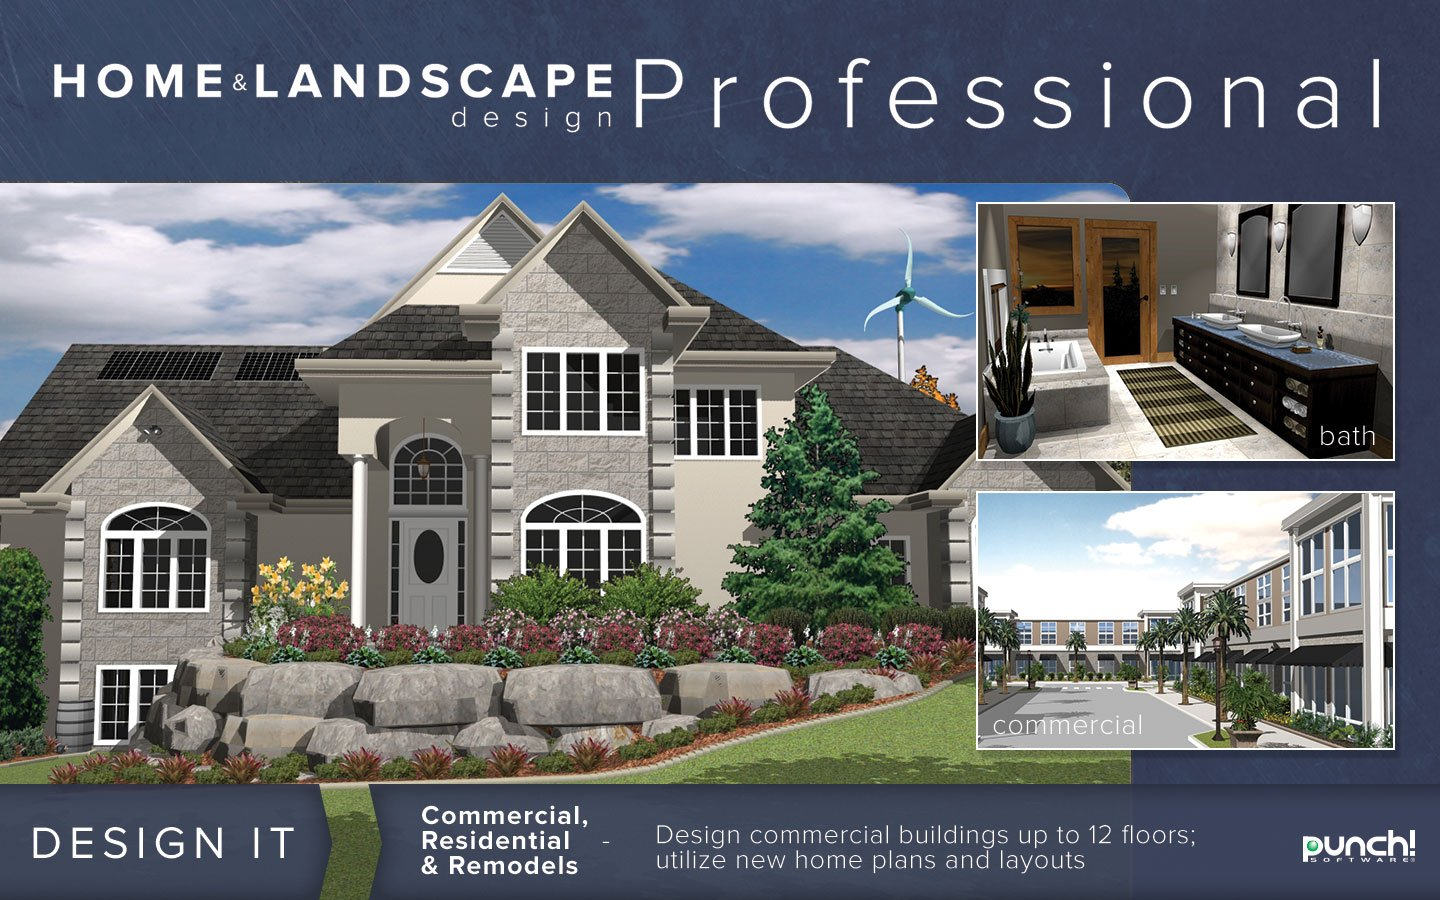 punch home amp landscape design 17 7 home design software punch home amp landscape design professional v19 home